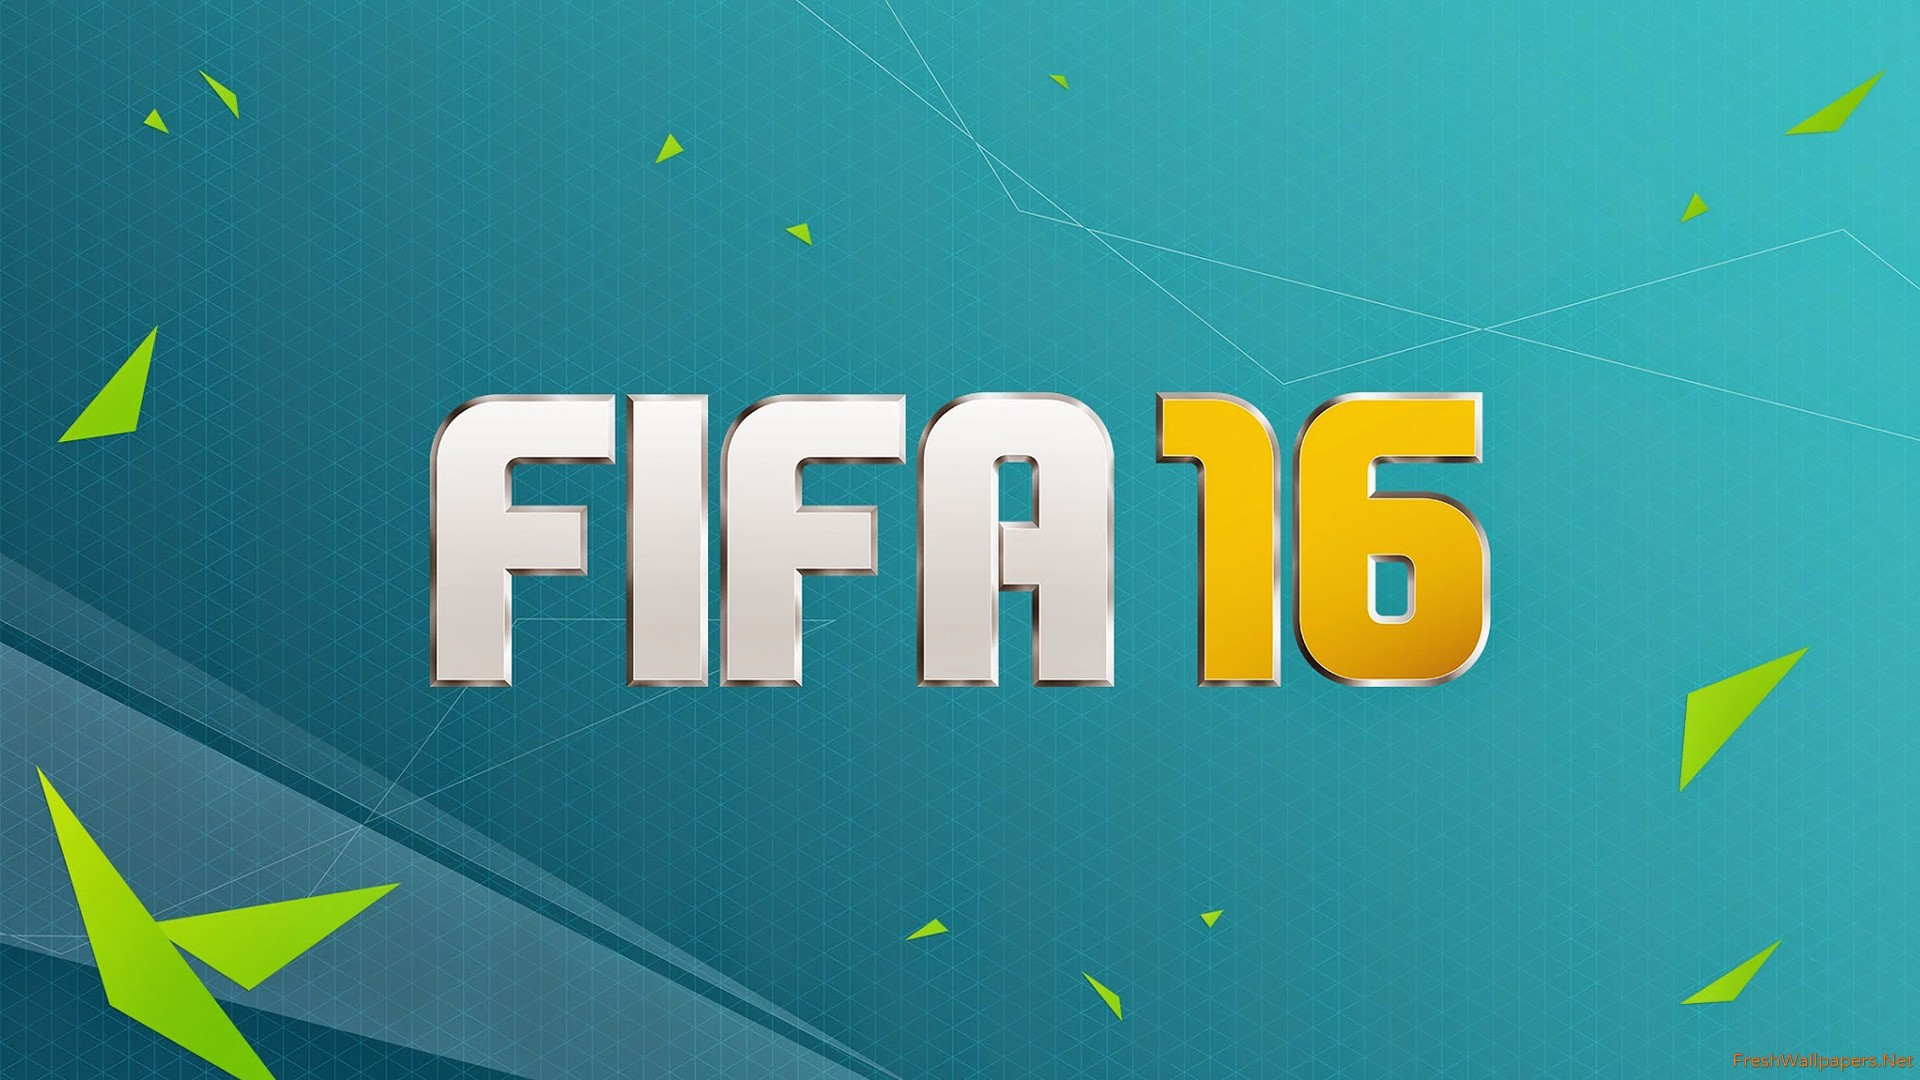 Super fifa 16 wallpaper full hd pictures - Wallpaper pictures ...